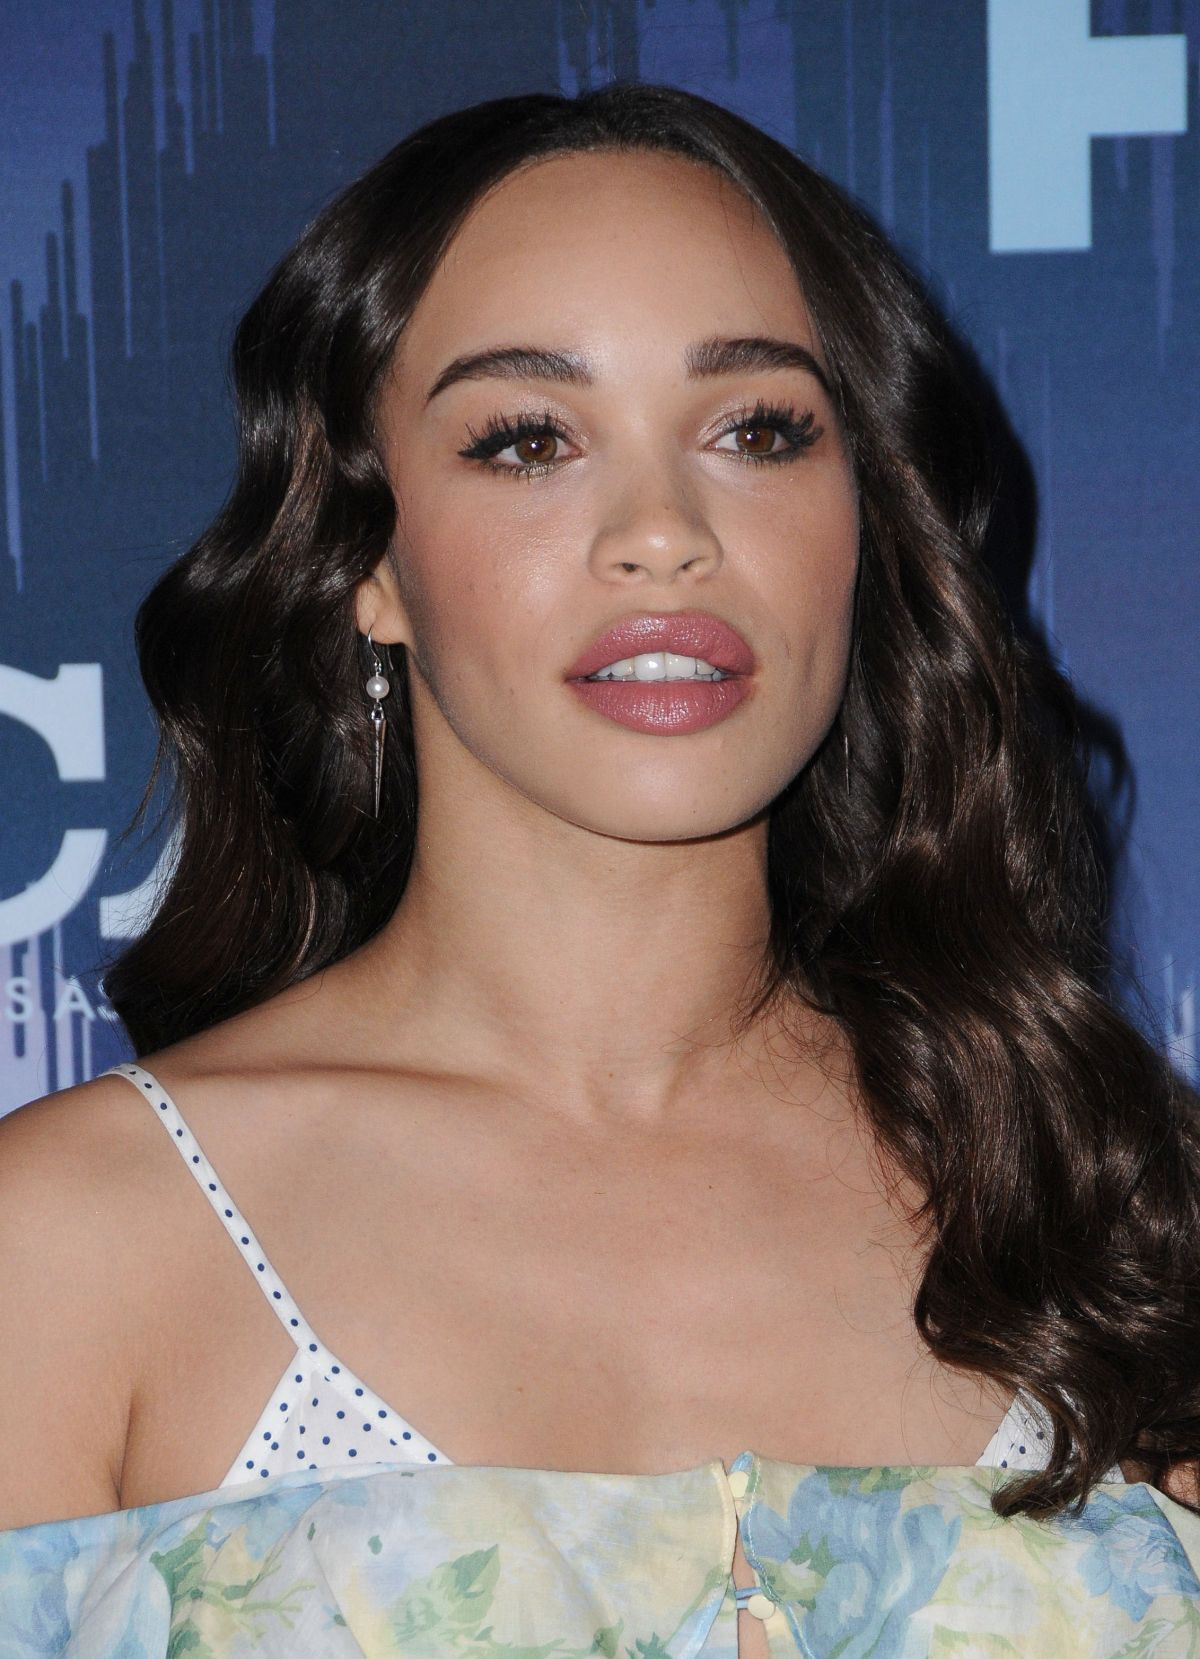 Gallery Cleopatra Coleman  nudes (96 pictures), Twitter, cleavage